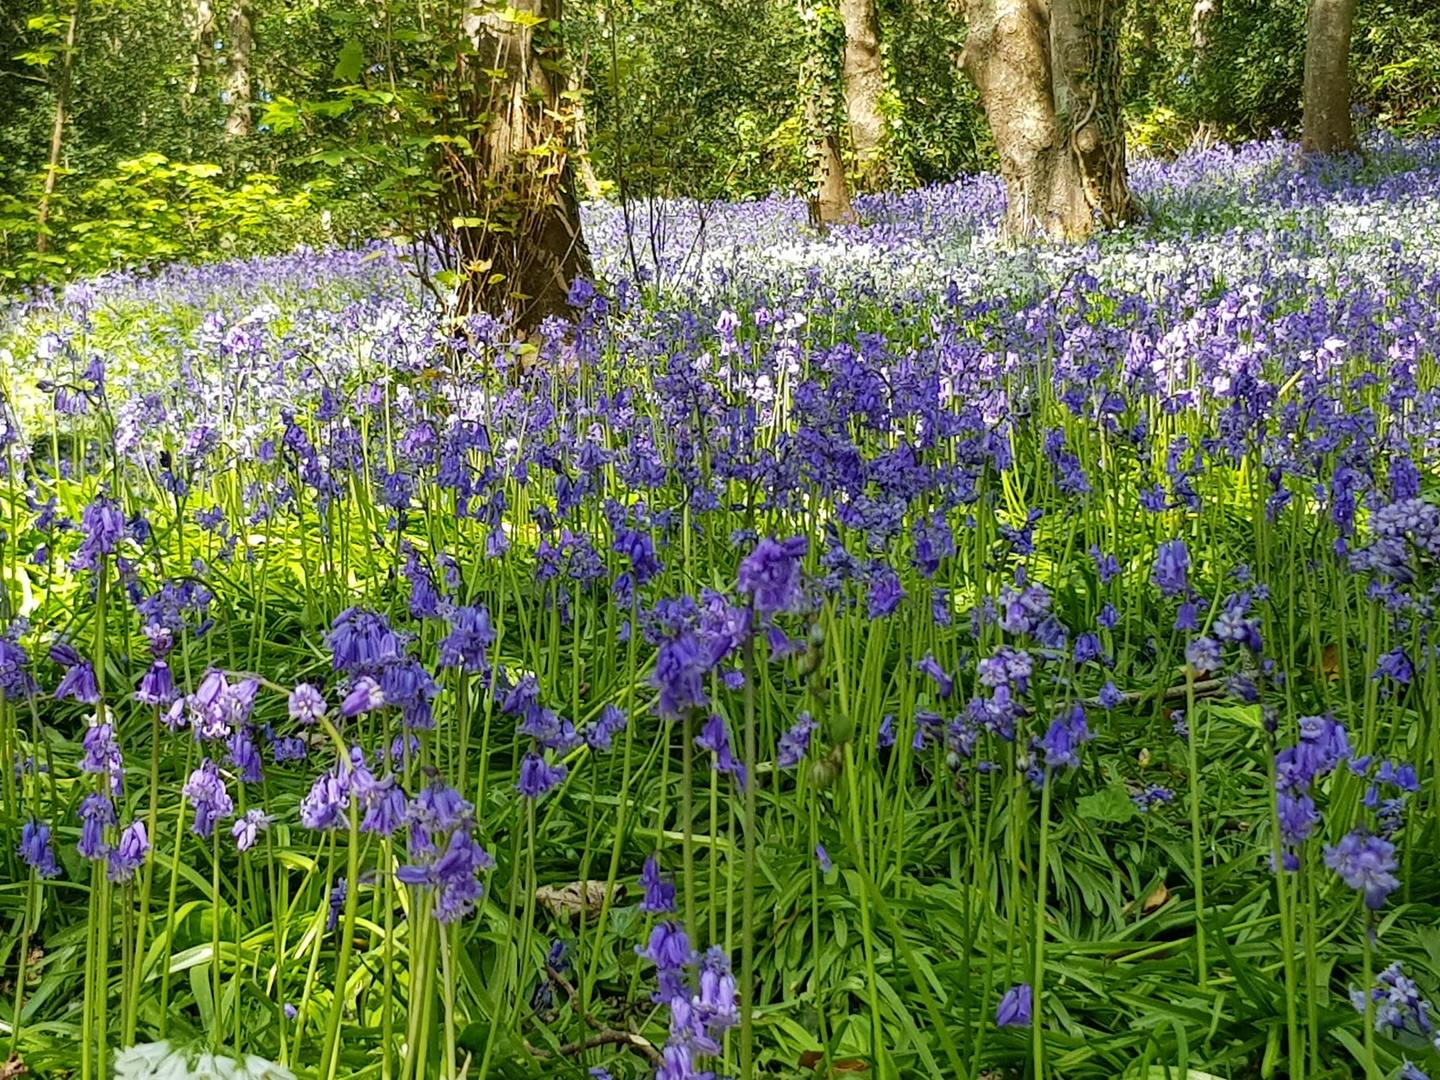 Bluebell woods on the island of Guernsey